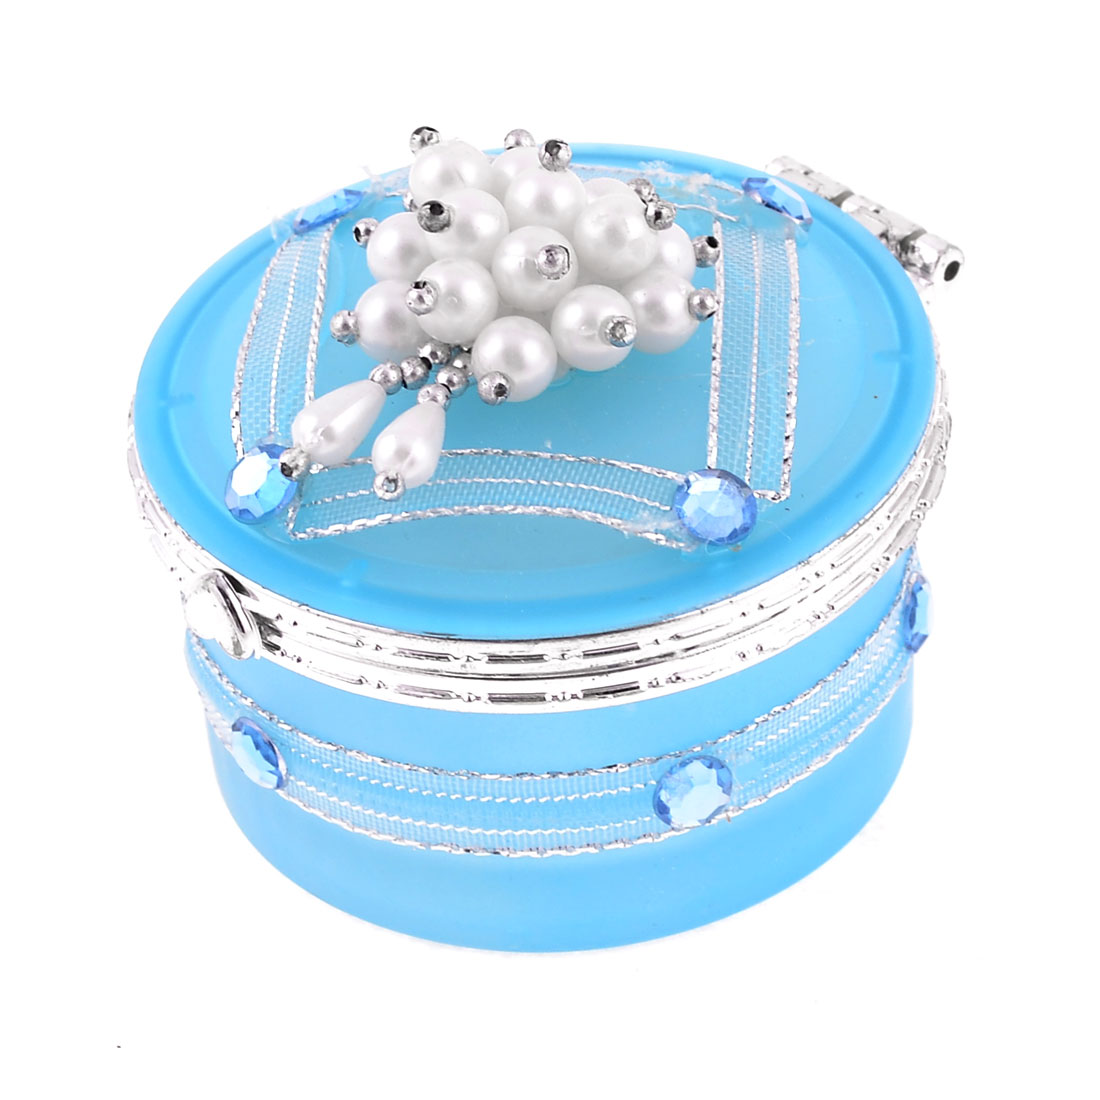 Faux Beads Decor Centering Flip Cap Cylinder Shape Babyblue Glass Jewelry Box